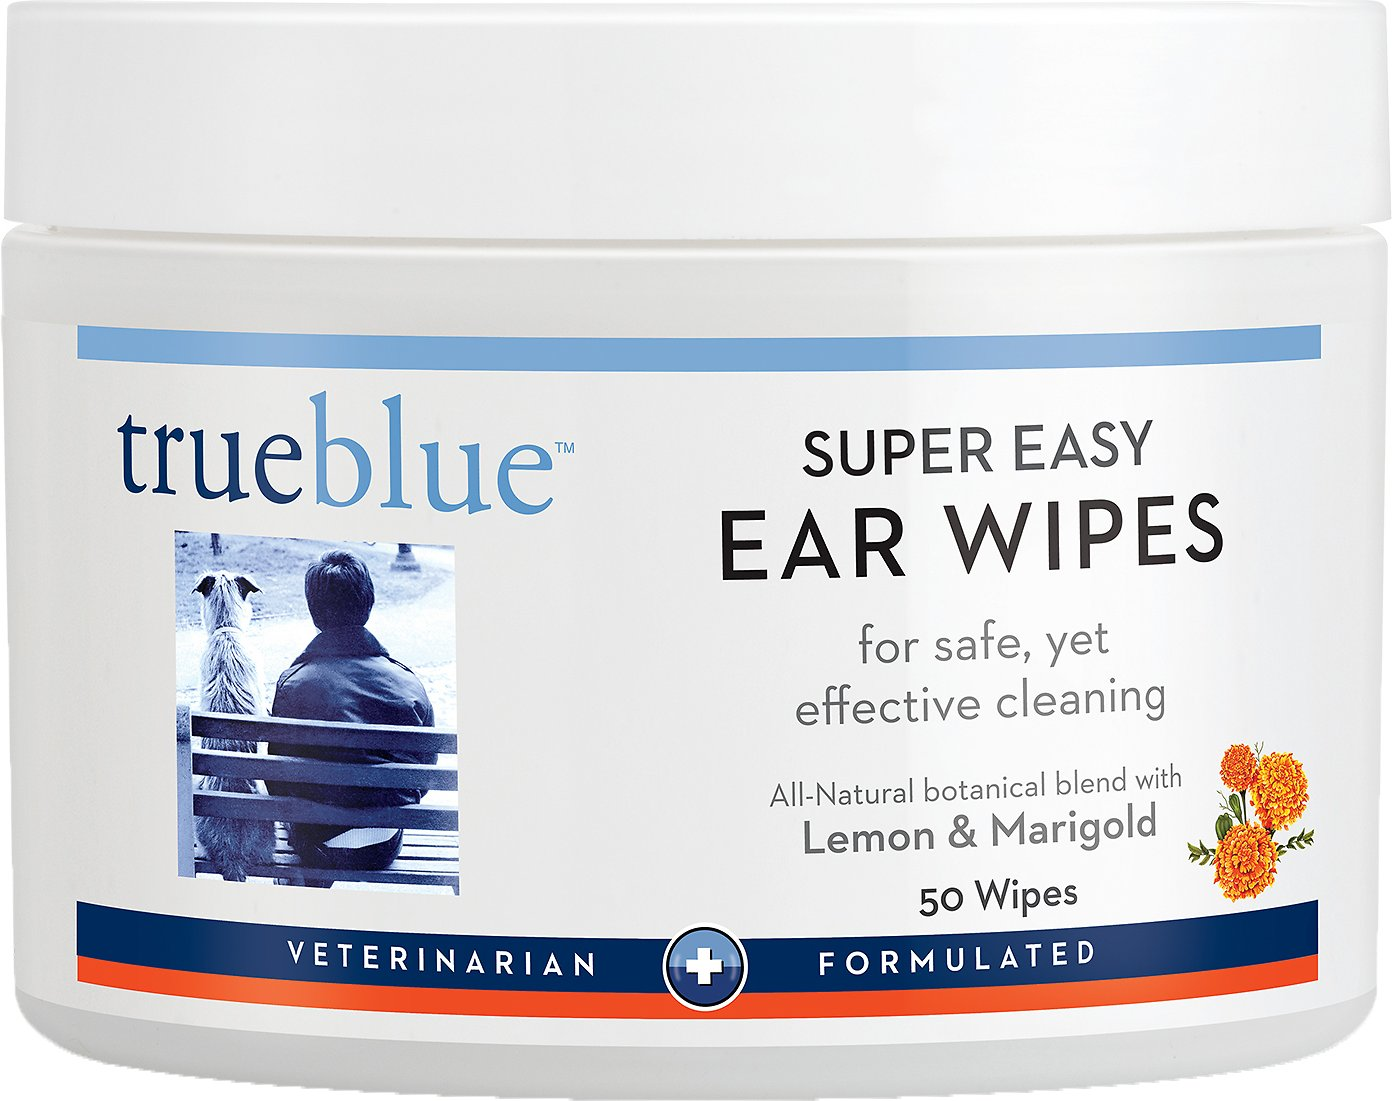 Trueblue Super Easy Ear Wipes - Lemon and Marigold